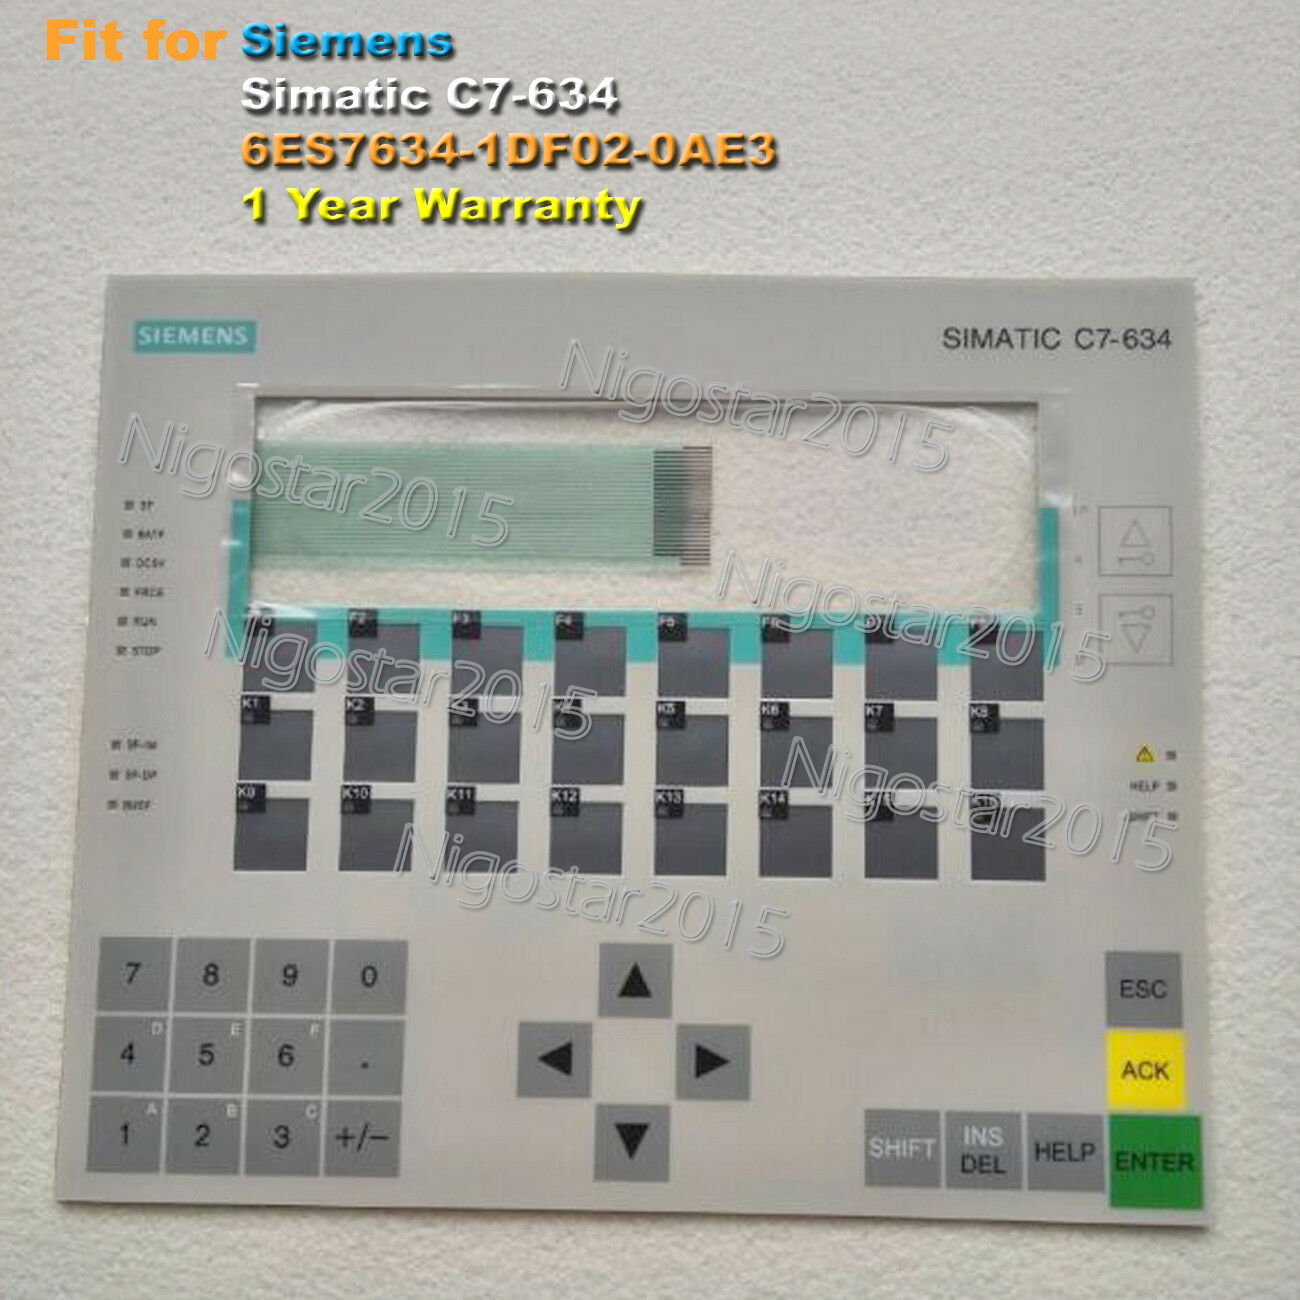 For SIEMENS SIMATIC C7-634 6ES7634-1DF02-0AE3 Membrane Keypad One Year Warranty